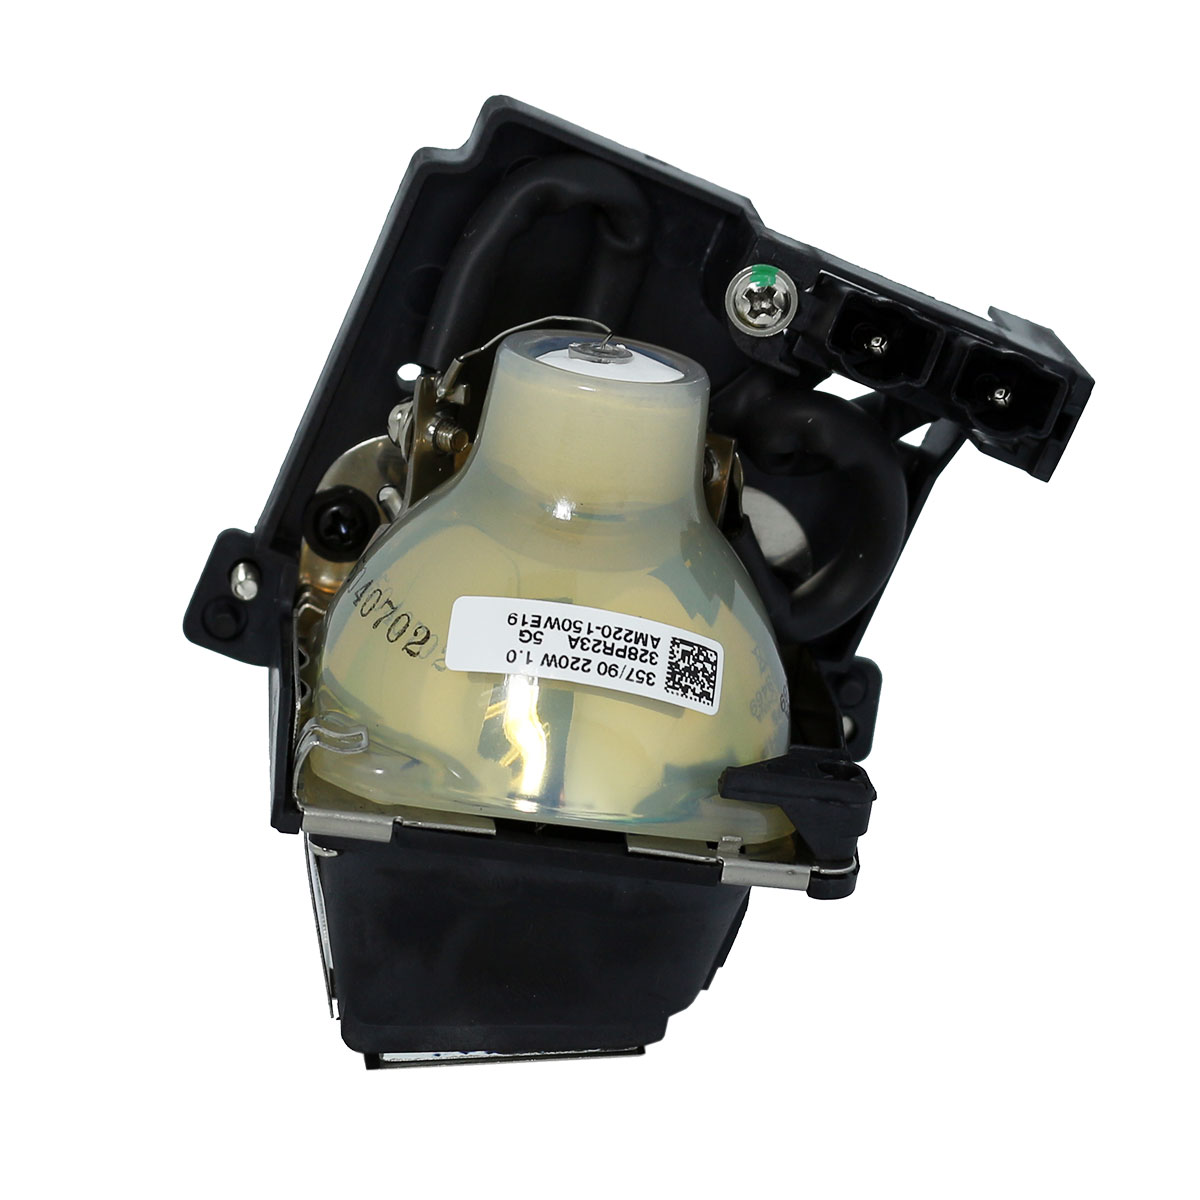 Original Philips Projector Lamp Replacement for Premier HE-S480 (Bulb Only) - image 4 de 5